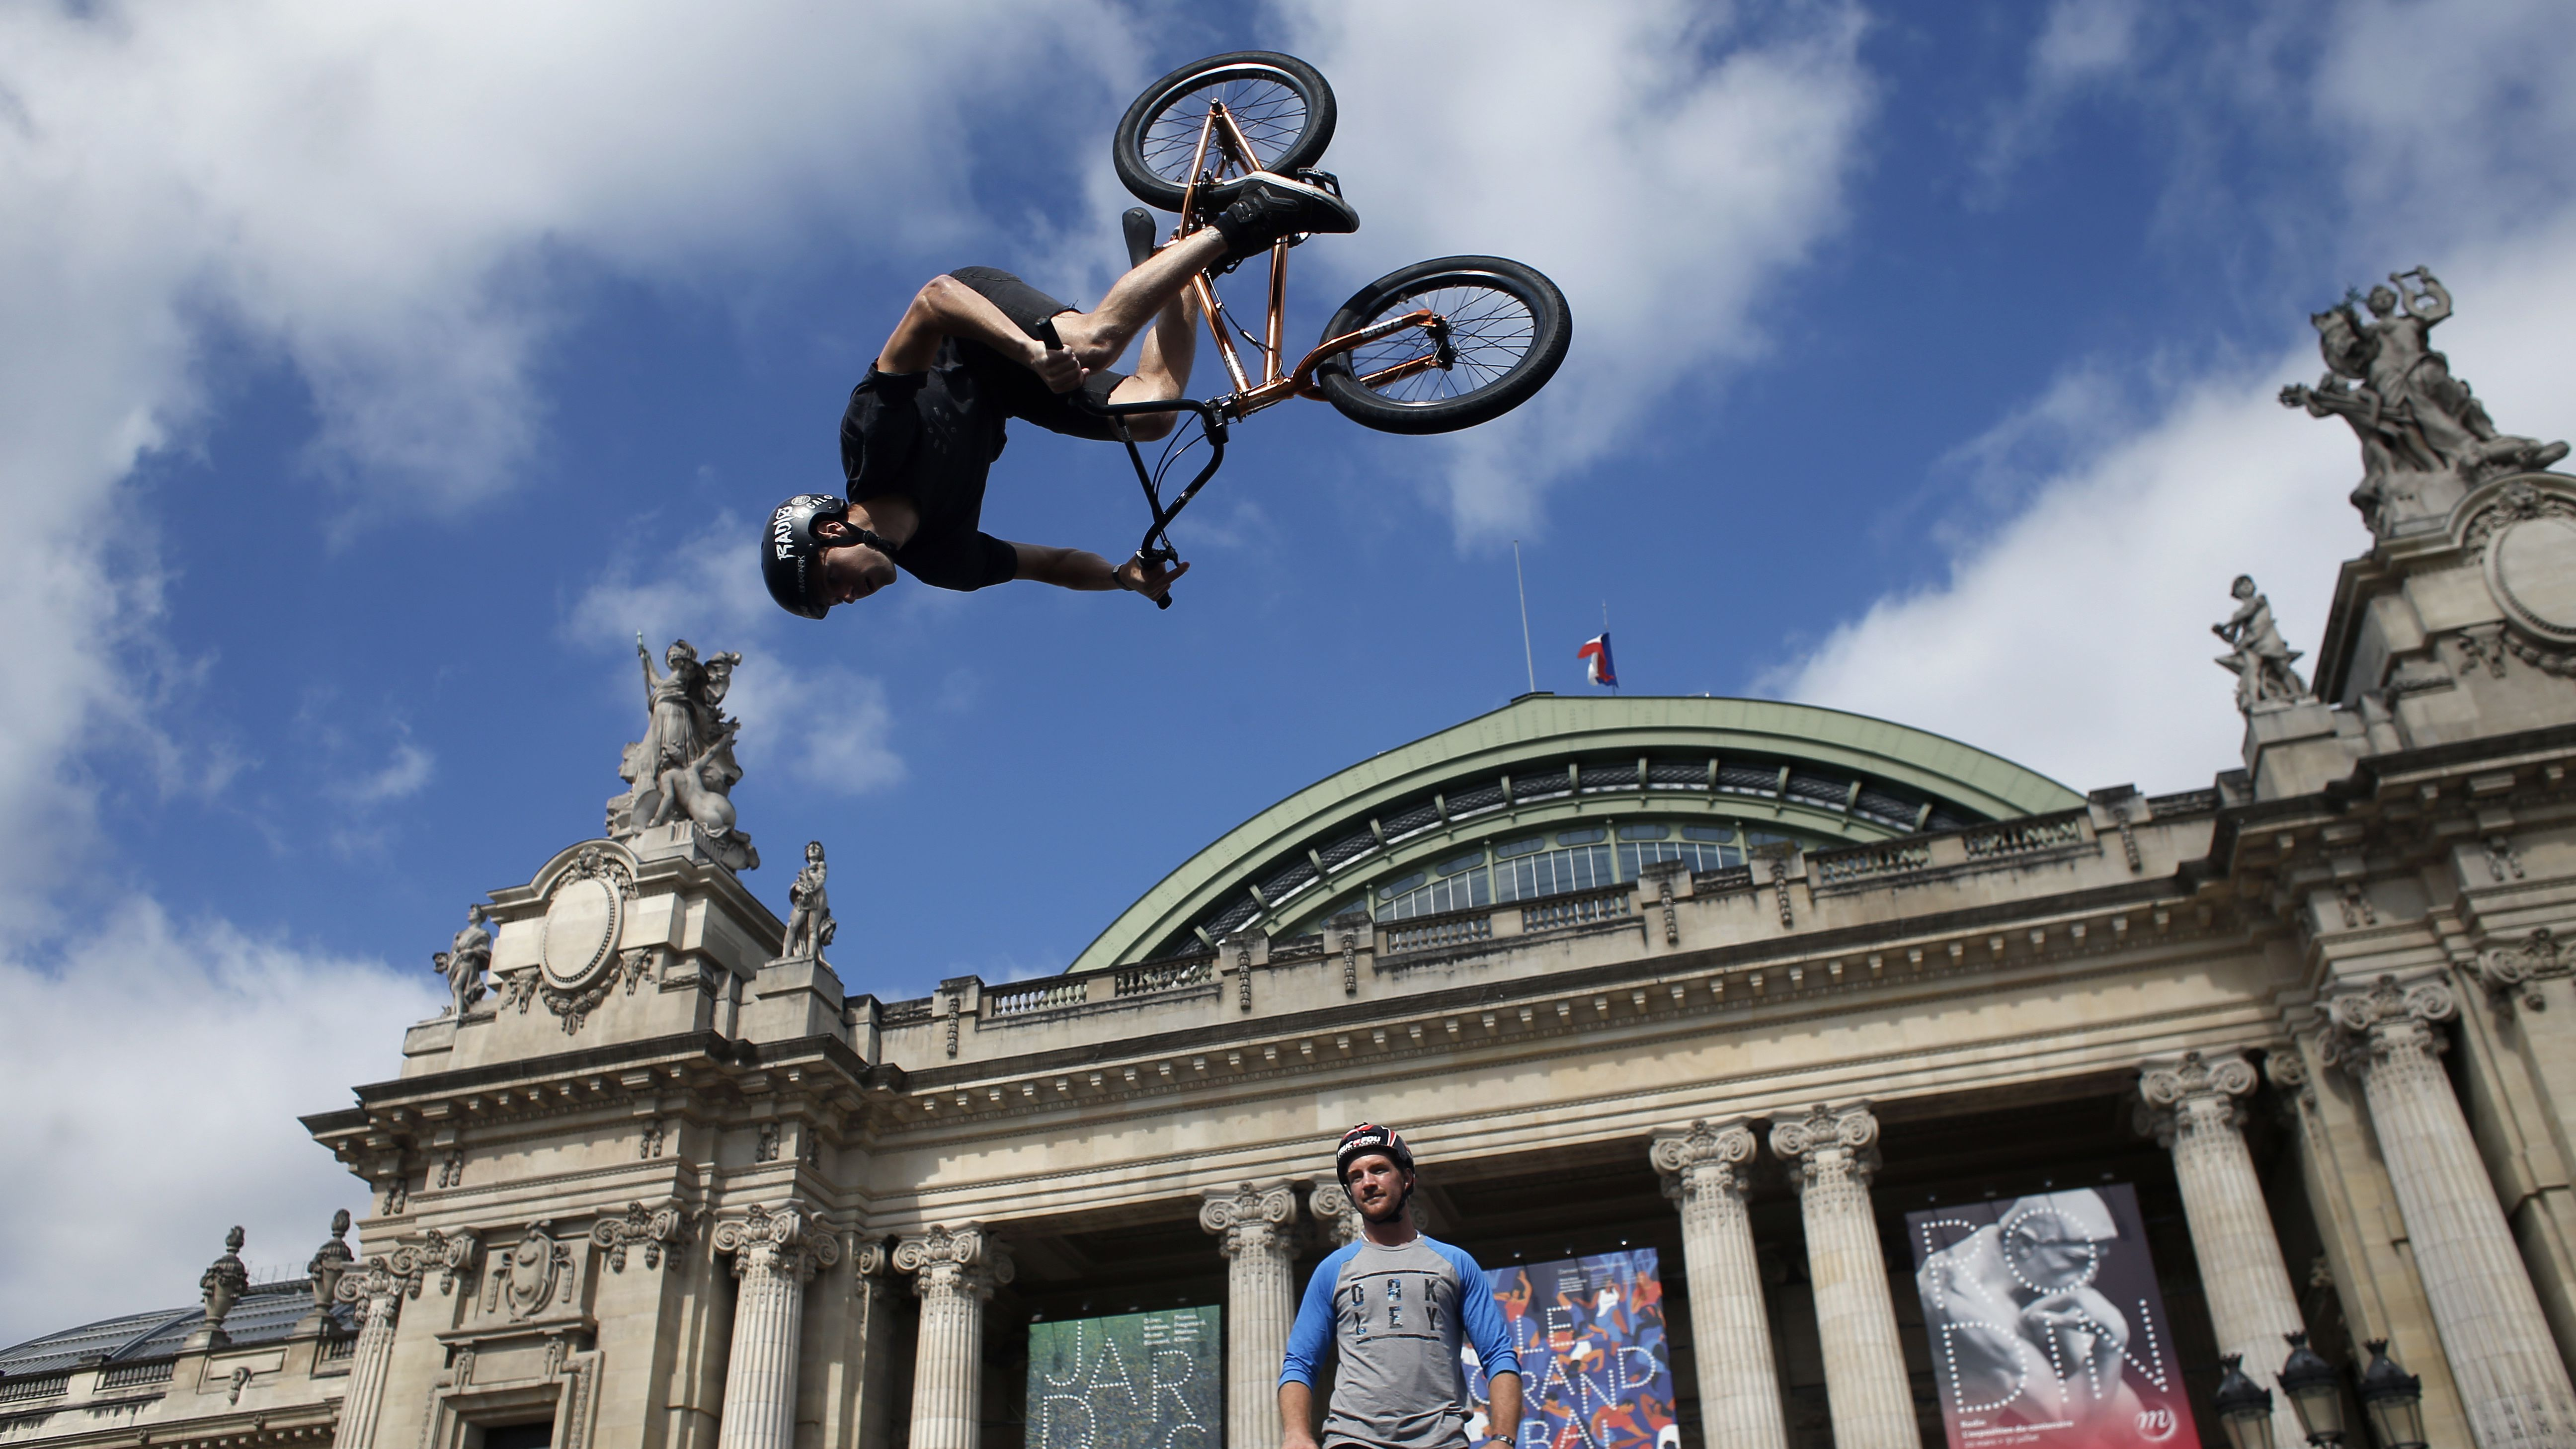 Belgian biker Kenneth Tancre performs outside the Grand Palais museum in Paris, Friday, June 23, 2017. Paris is aiming to boost its bid for the 2024 Olympics by turning some of its world-famous landmarks over to sports for two days, with 100-meter races on a track floating on the Seine, high-diving into the river, cycling around the Arc de Triomphe and other events to showcase the French capital's suitability for the games.